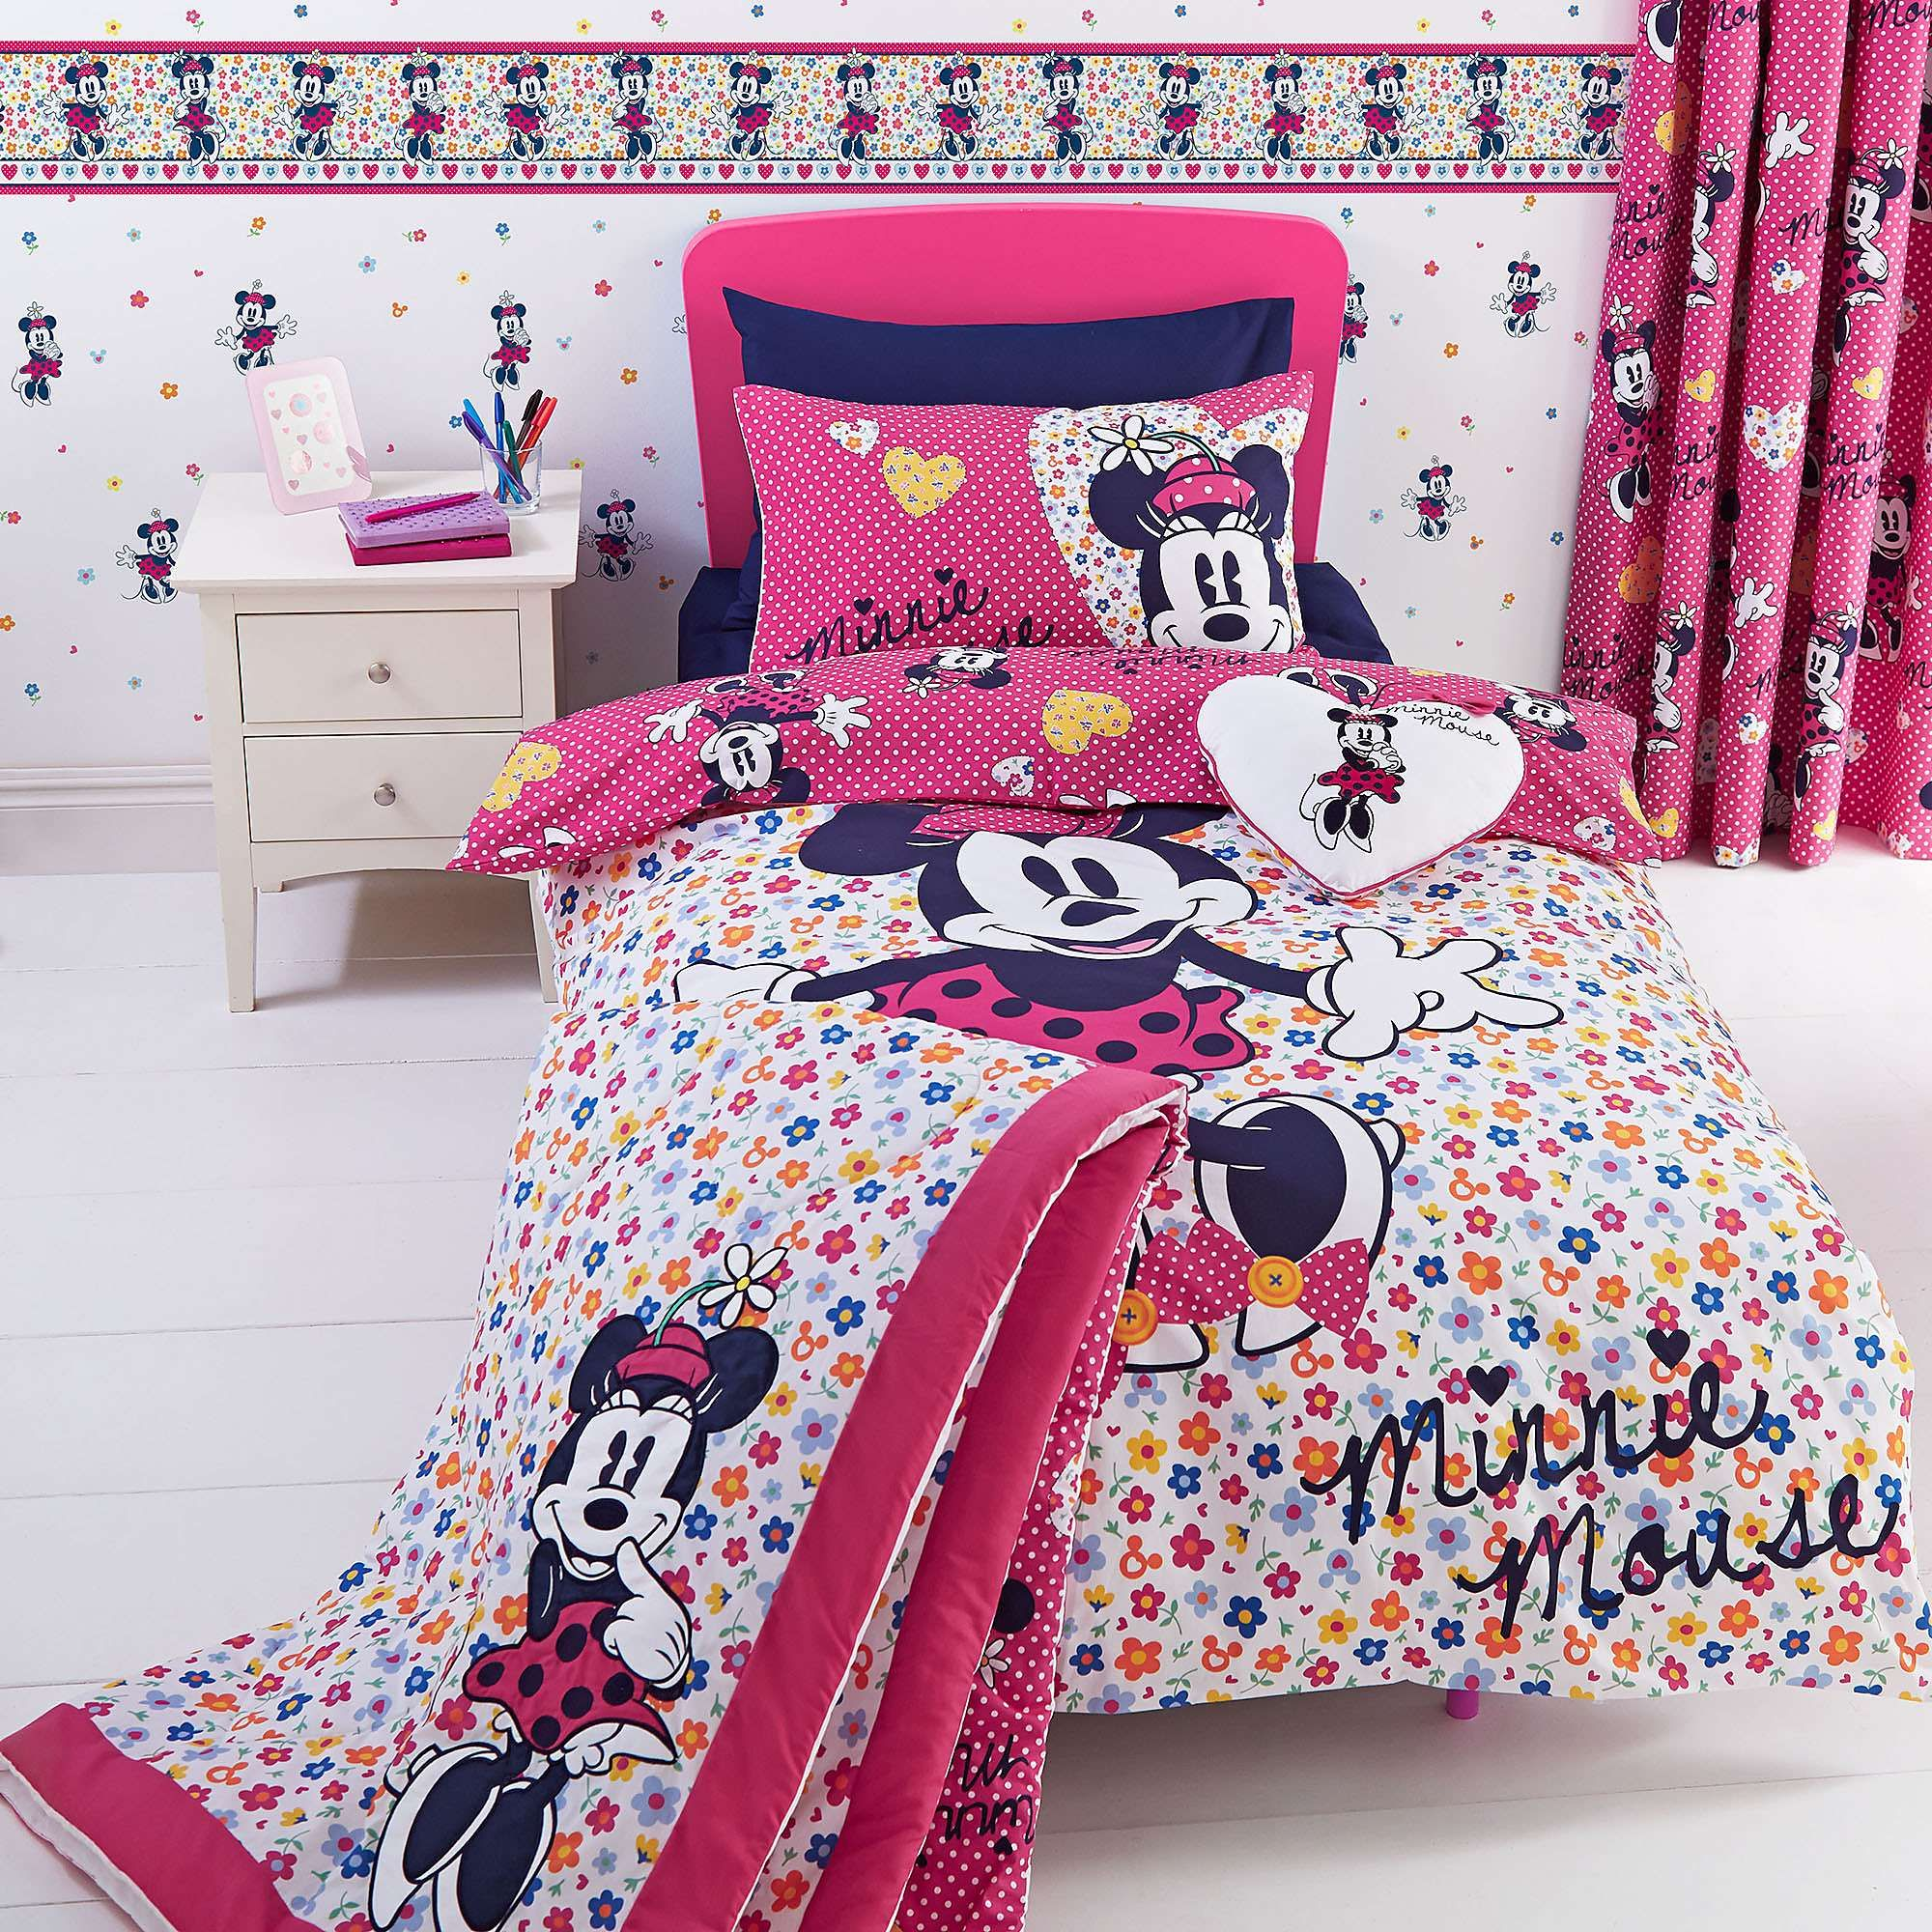 Exclusive To Dunelm, This Duvet Cover Set Features A Minnie